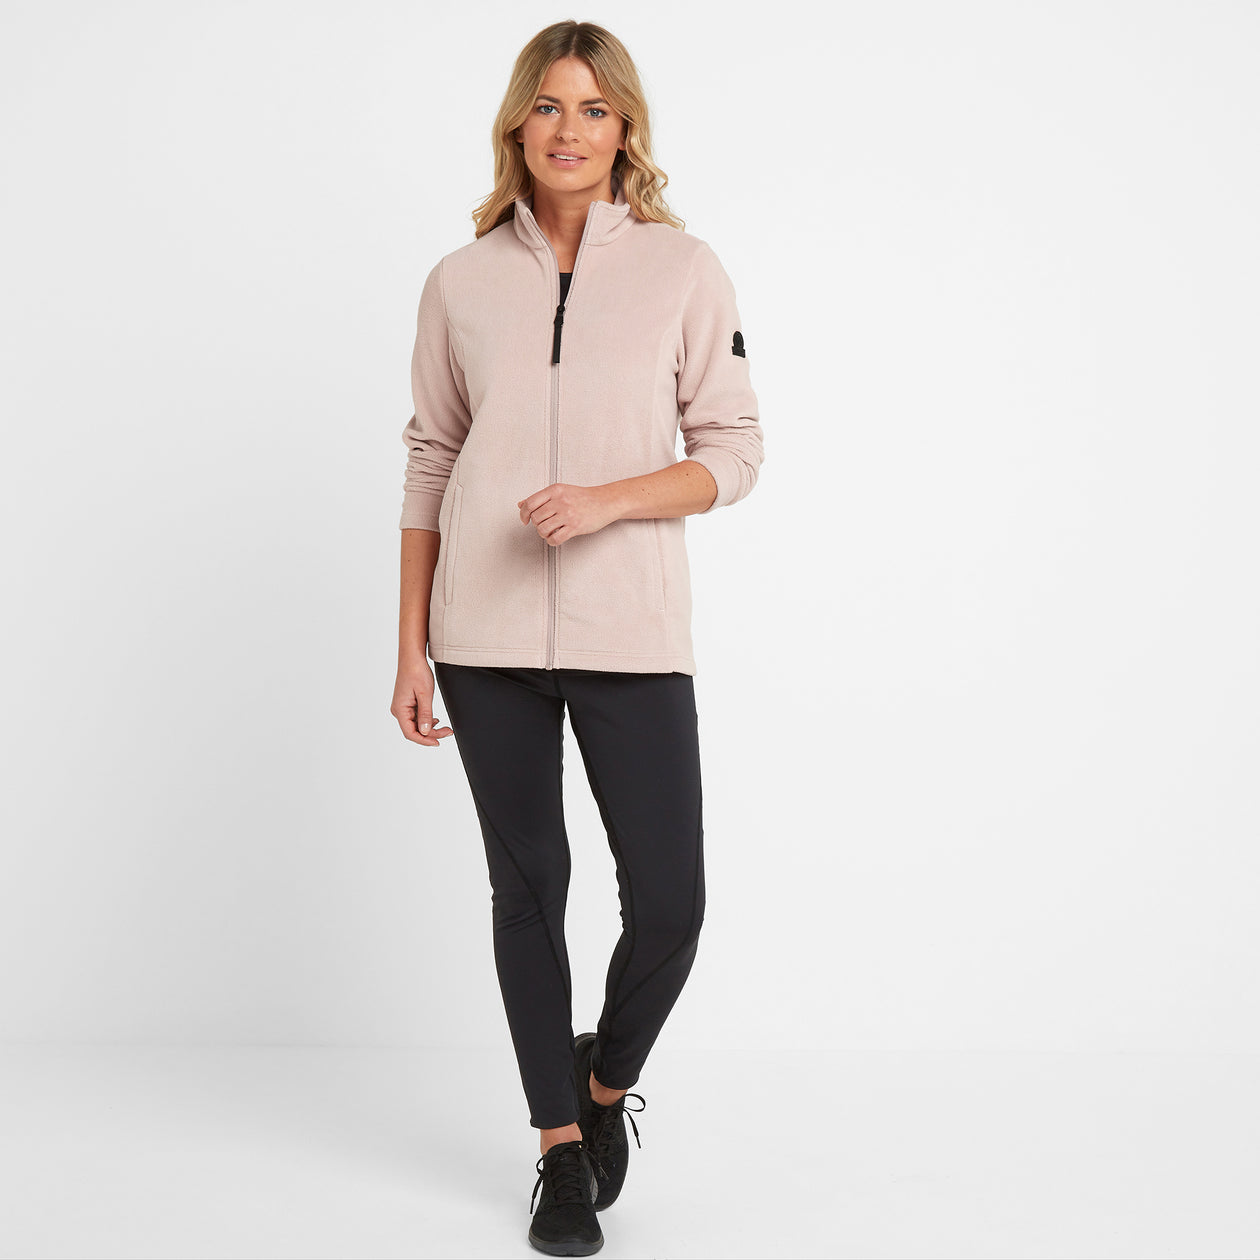 Shire Womens Fleece Jacket - Dusky Pink image 4